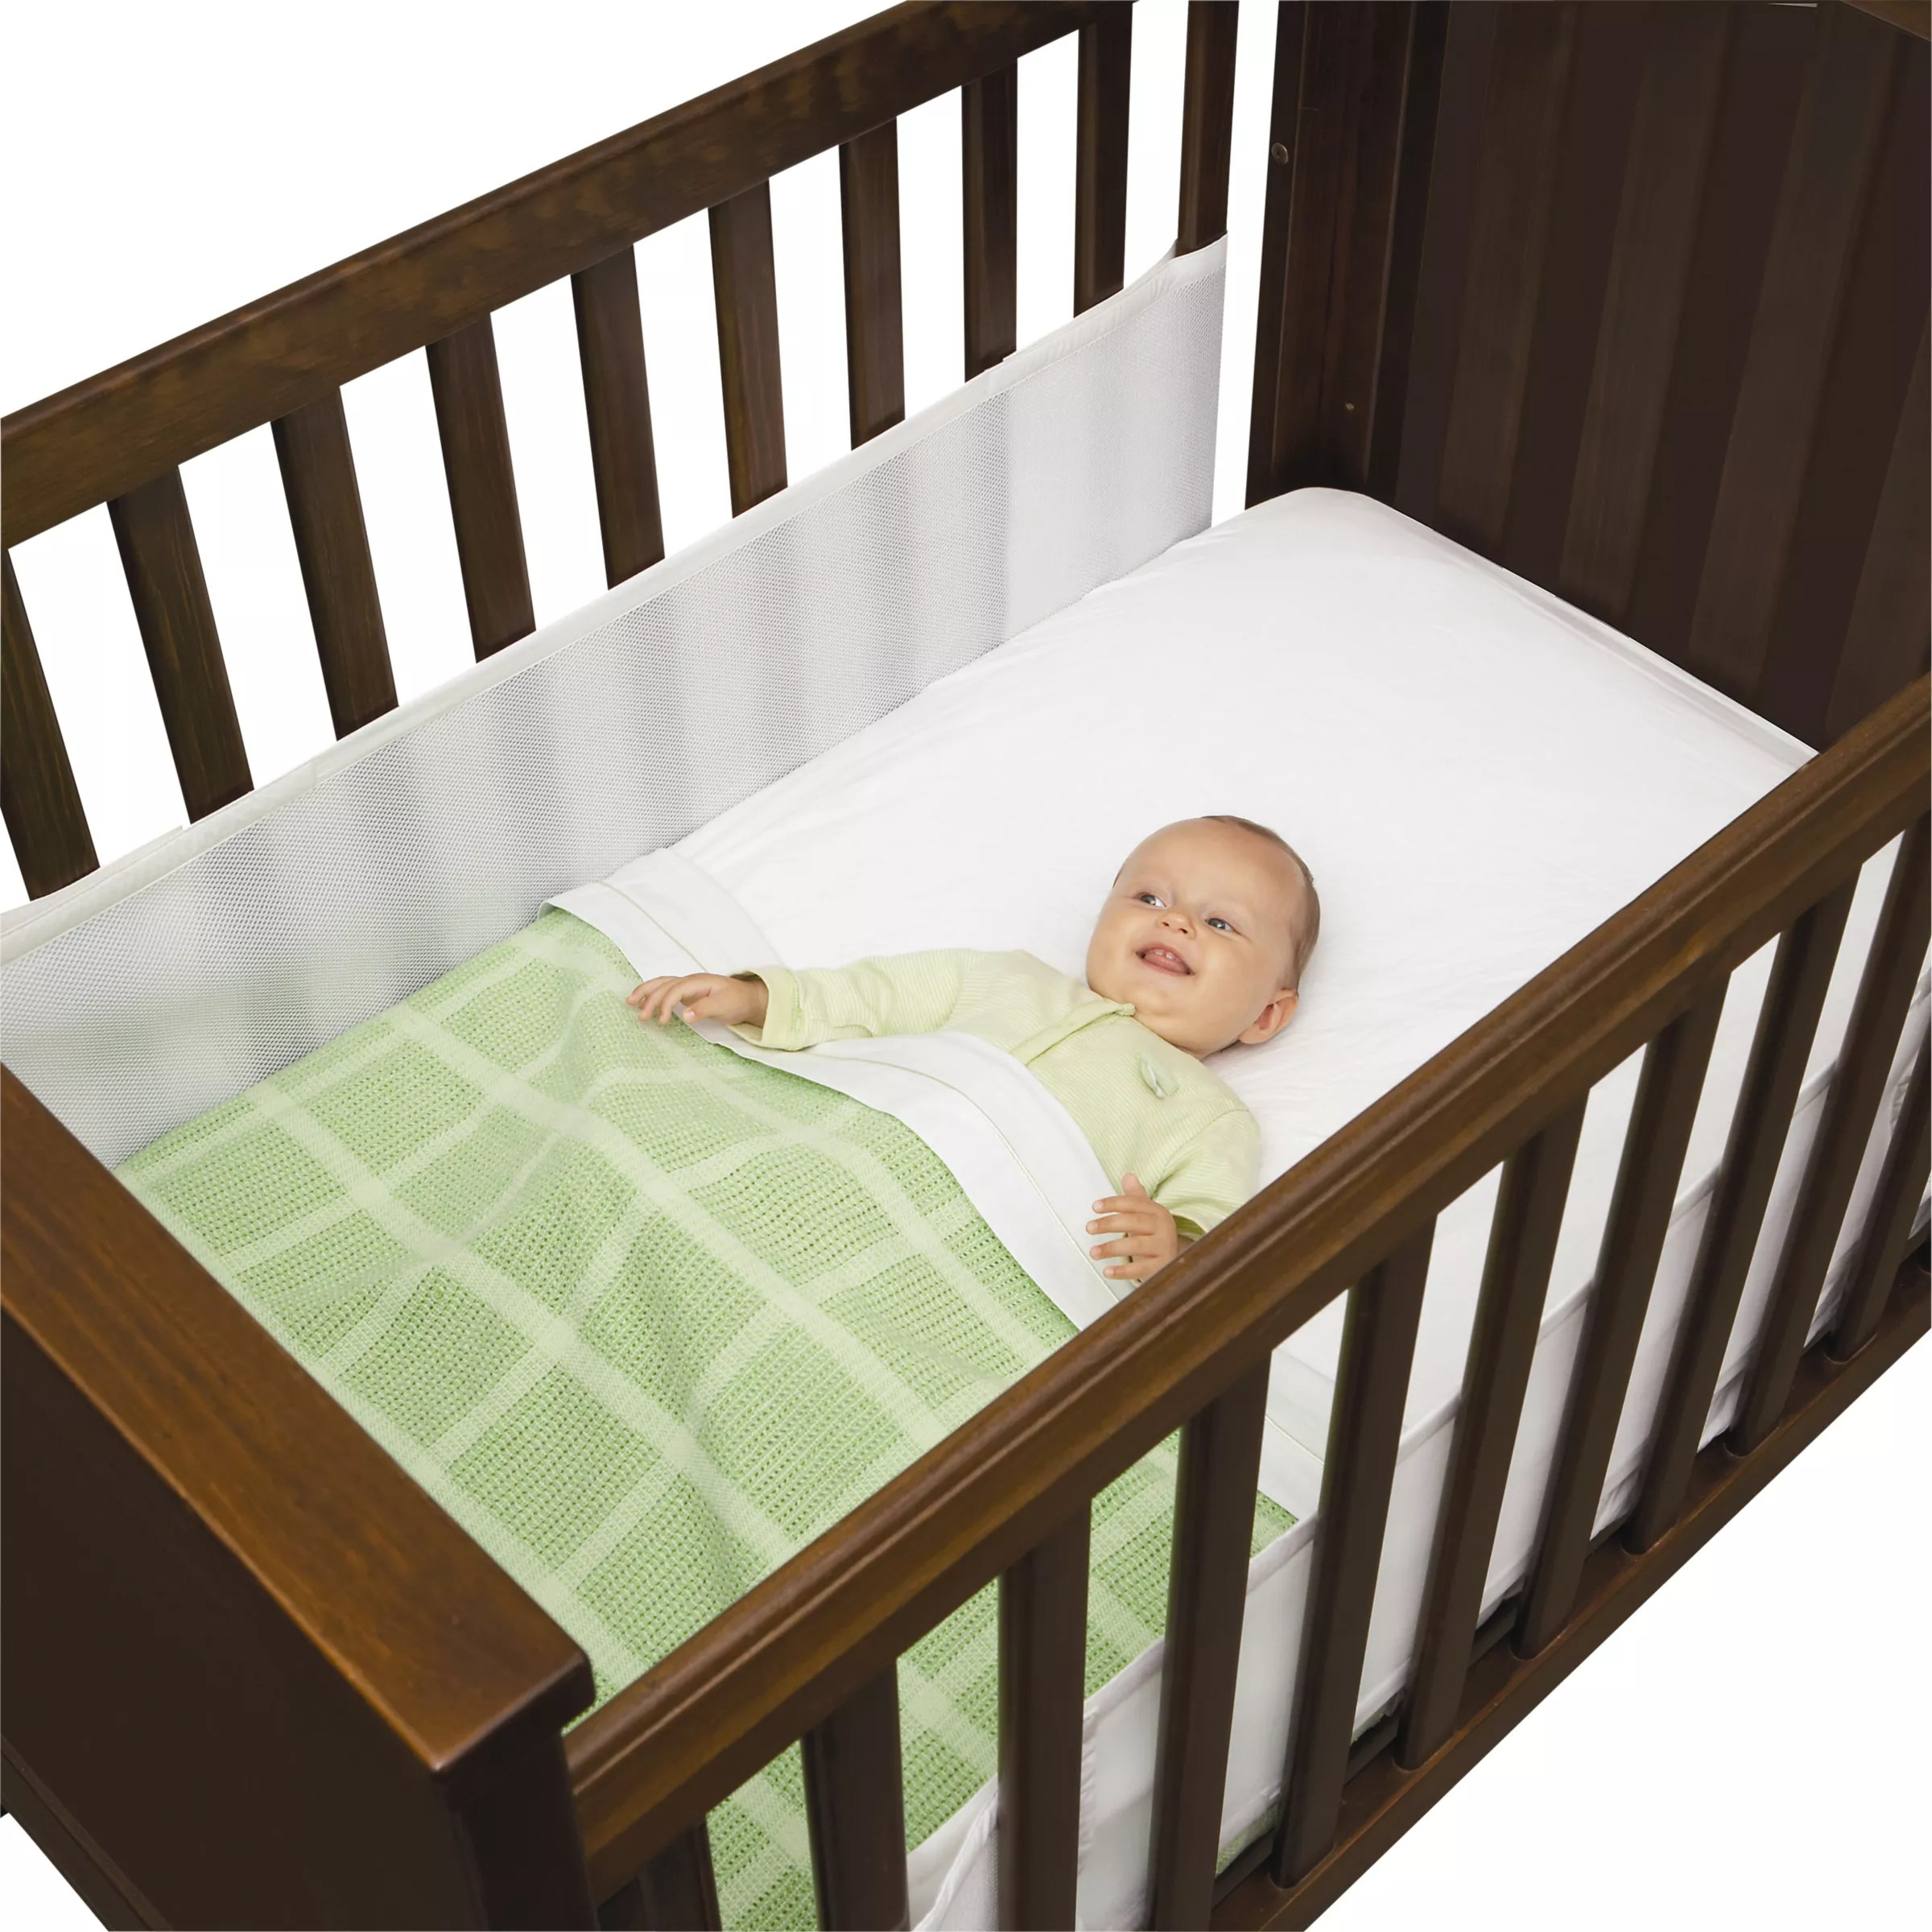 Airwrap Cot Bumper Airwrap Mesh Cot System 2 Sided At John Lewis Partners